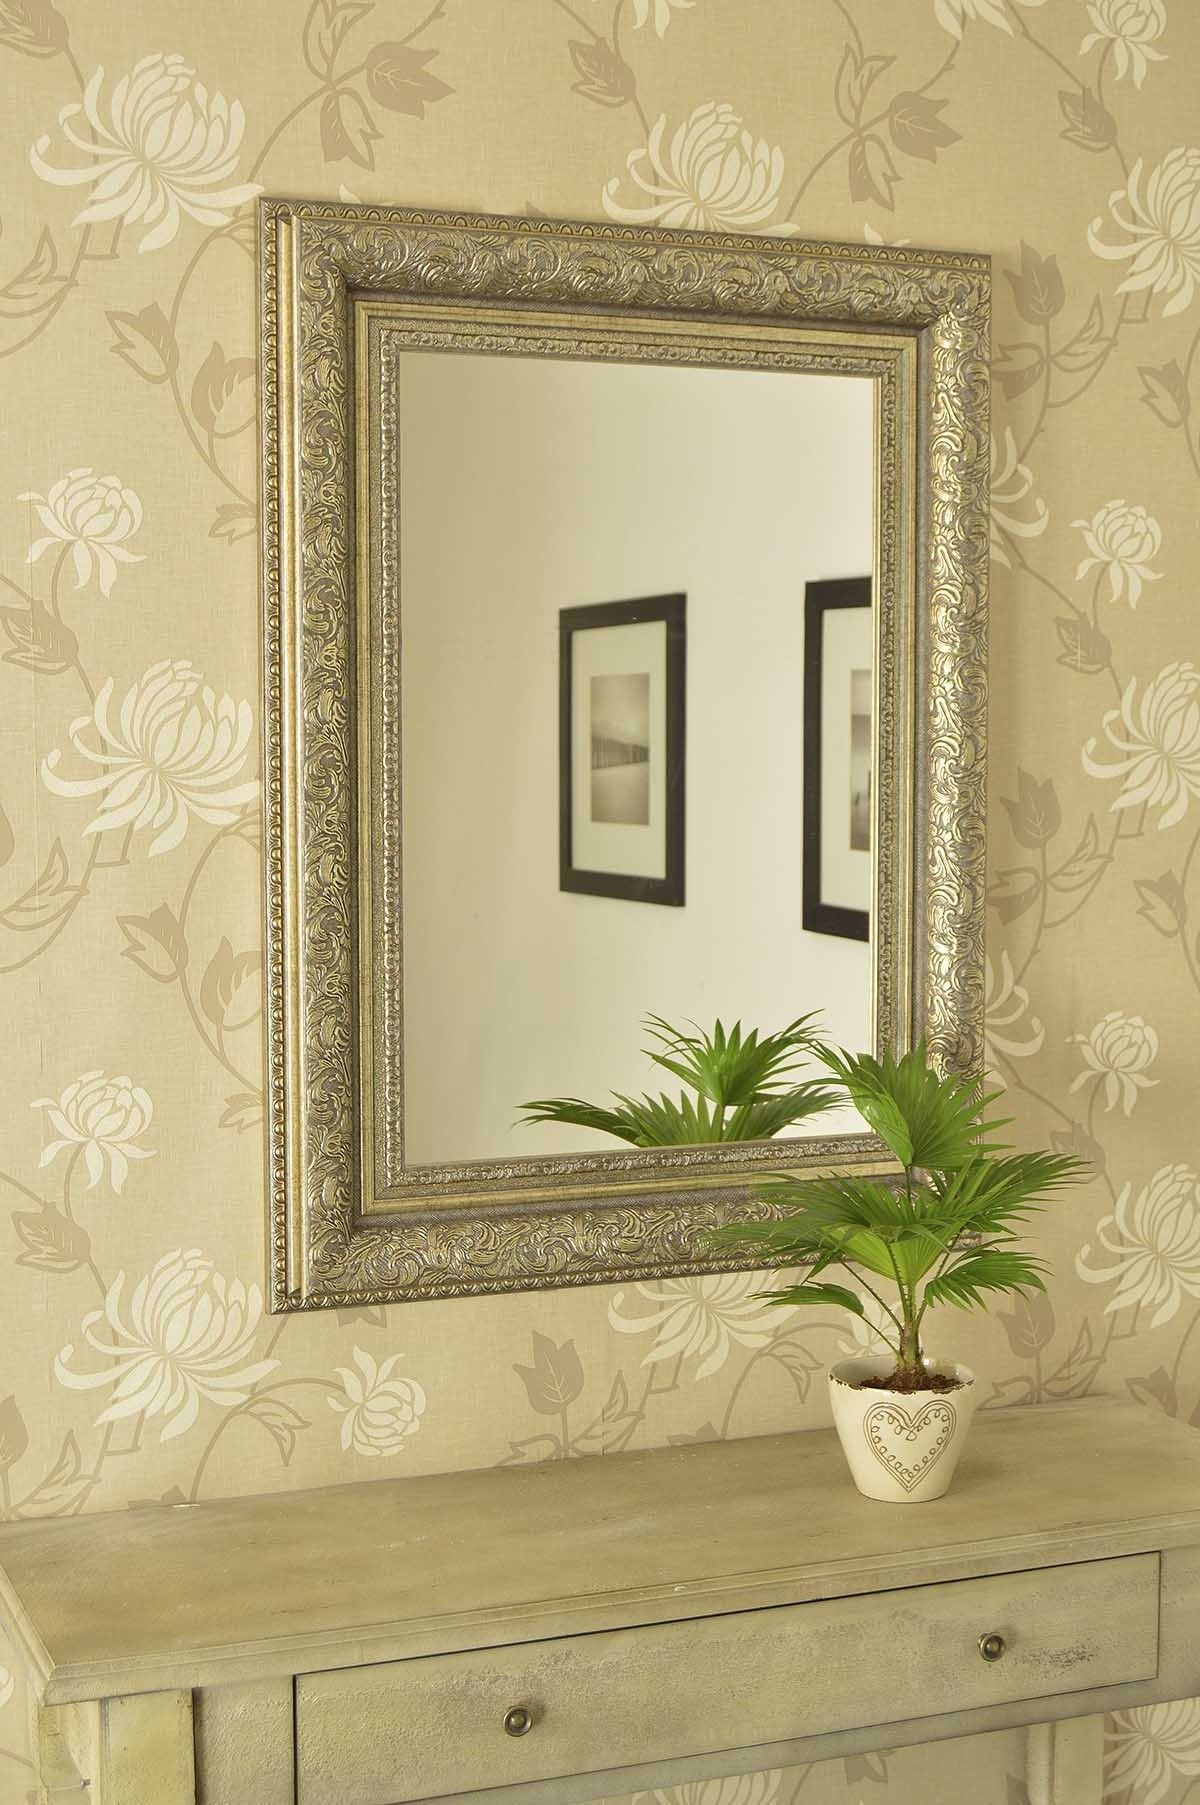 Wall Mirror. Cheap Barcelona Wall Mirror Verycouk With Wall Mirror ...